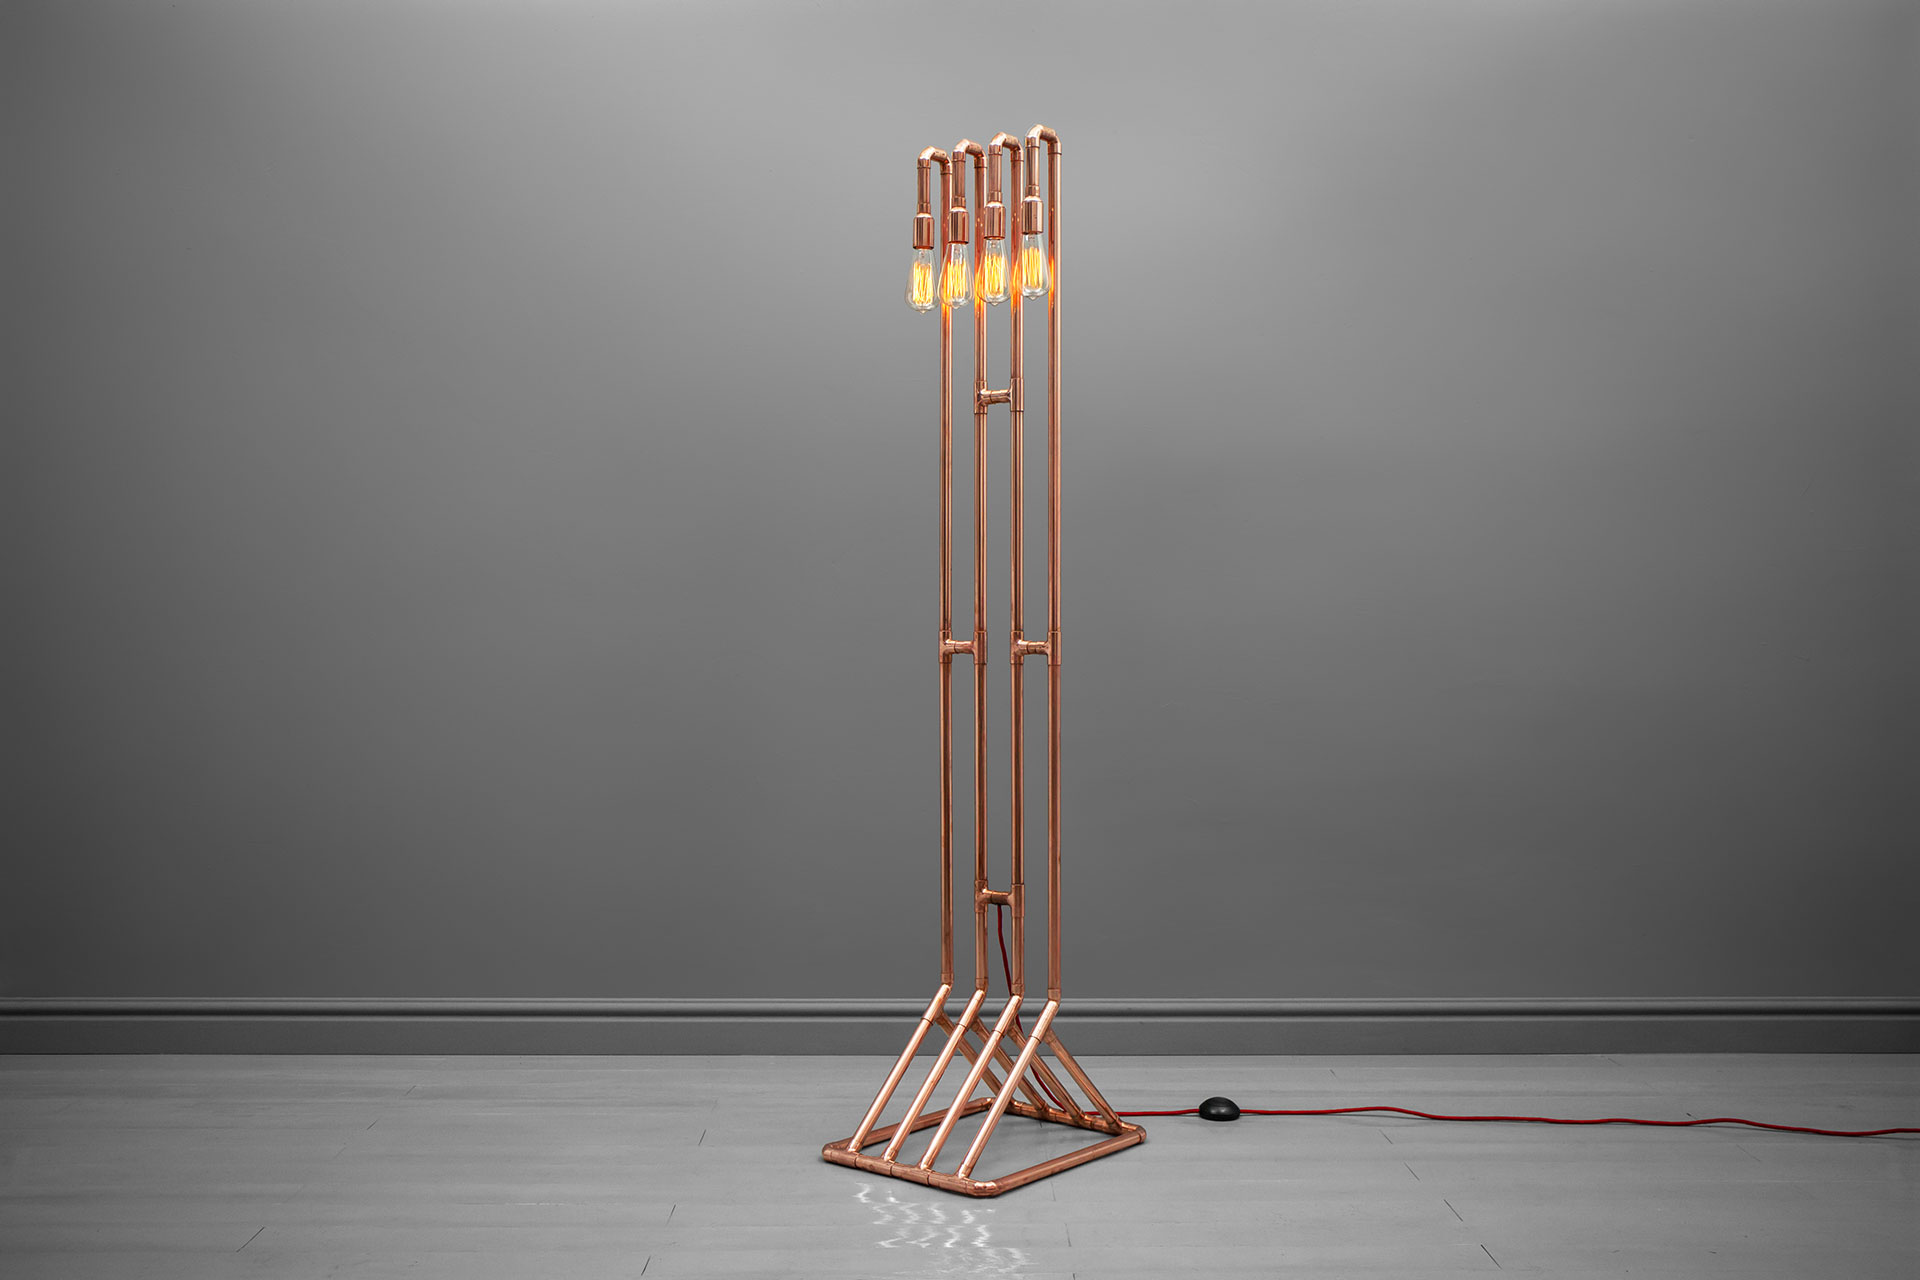 Decorative floor lamp in trendy copper or gold brass inspired by steampunk design